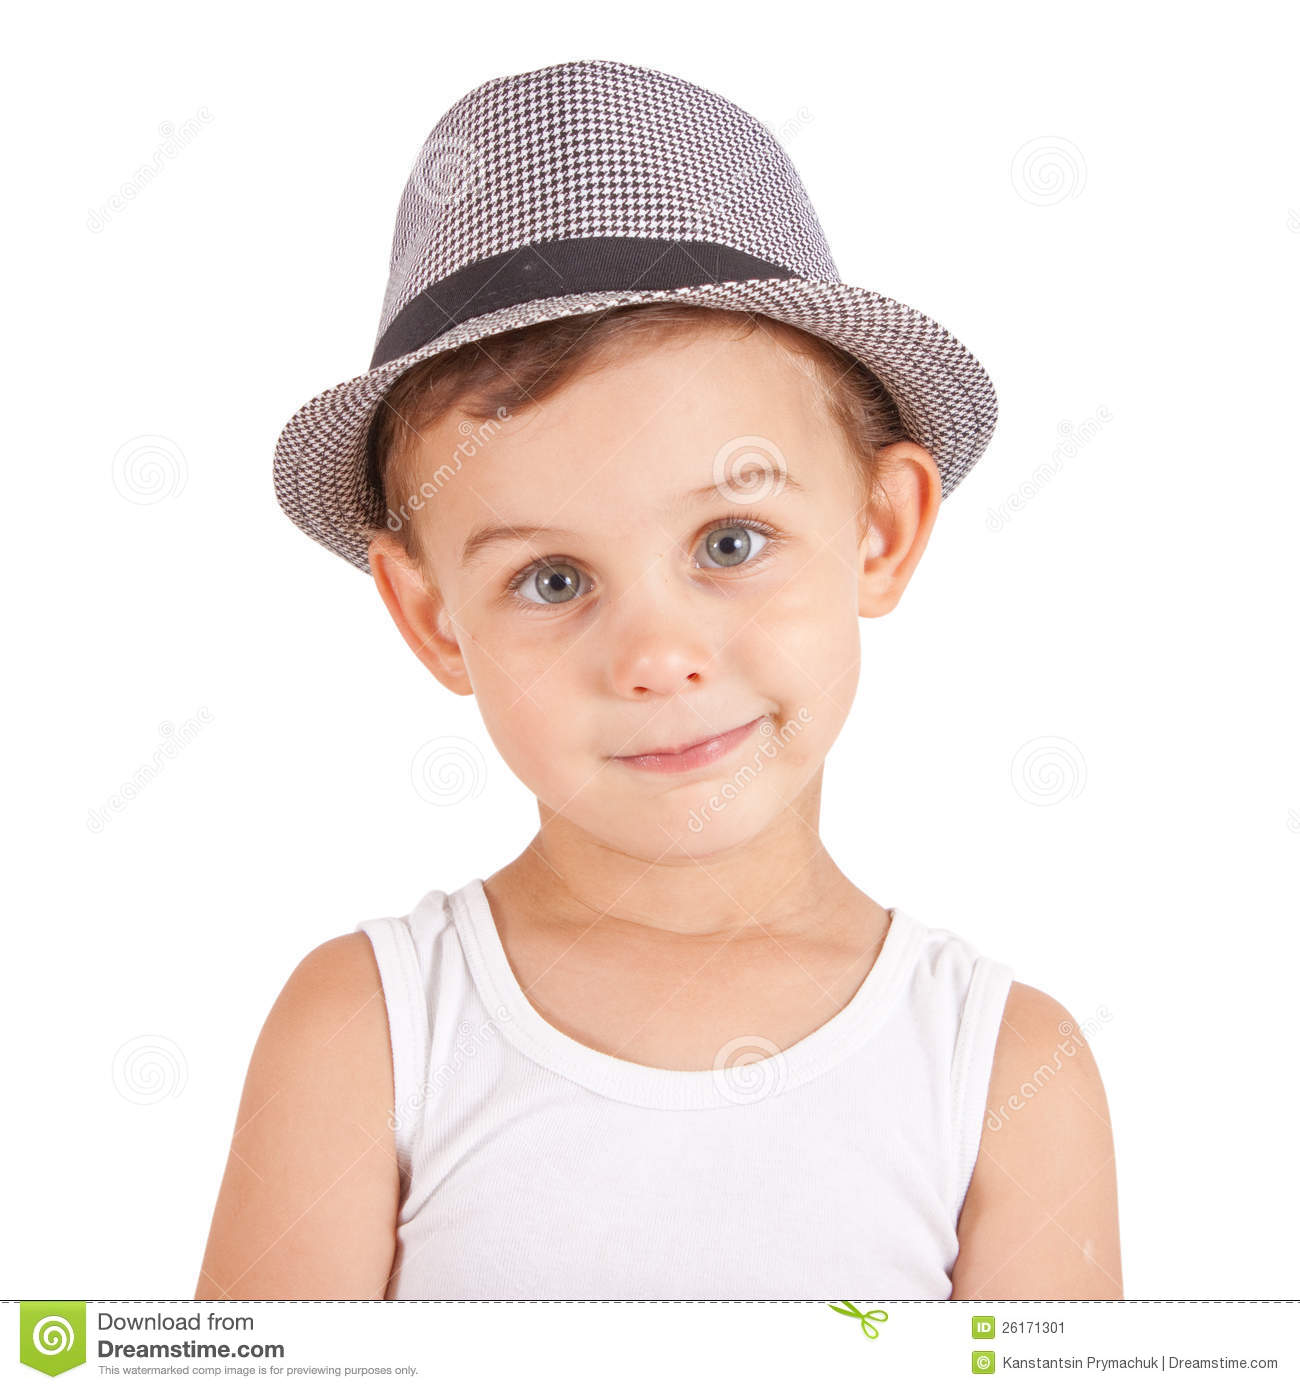 Cool And Stylish Boys With Hat